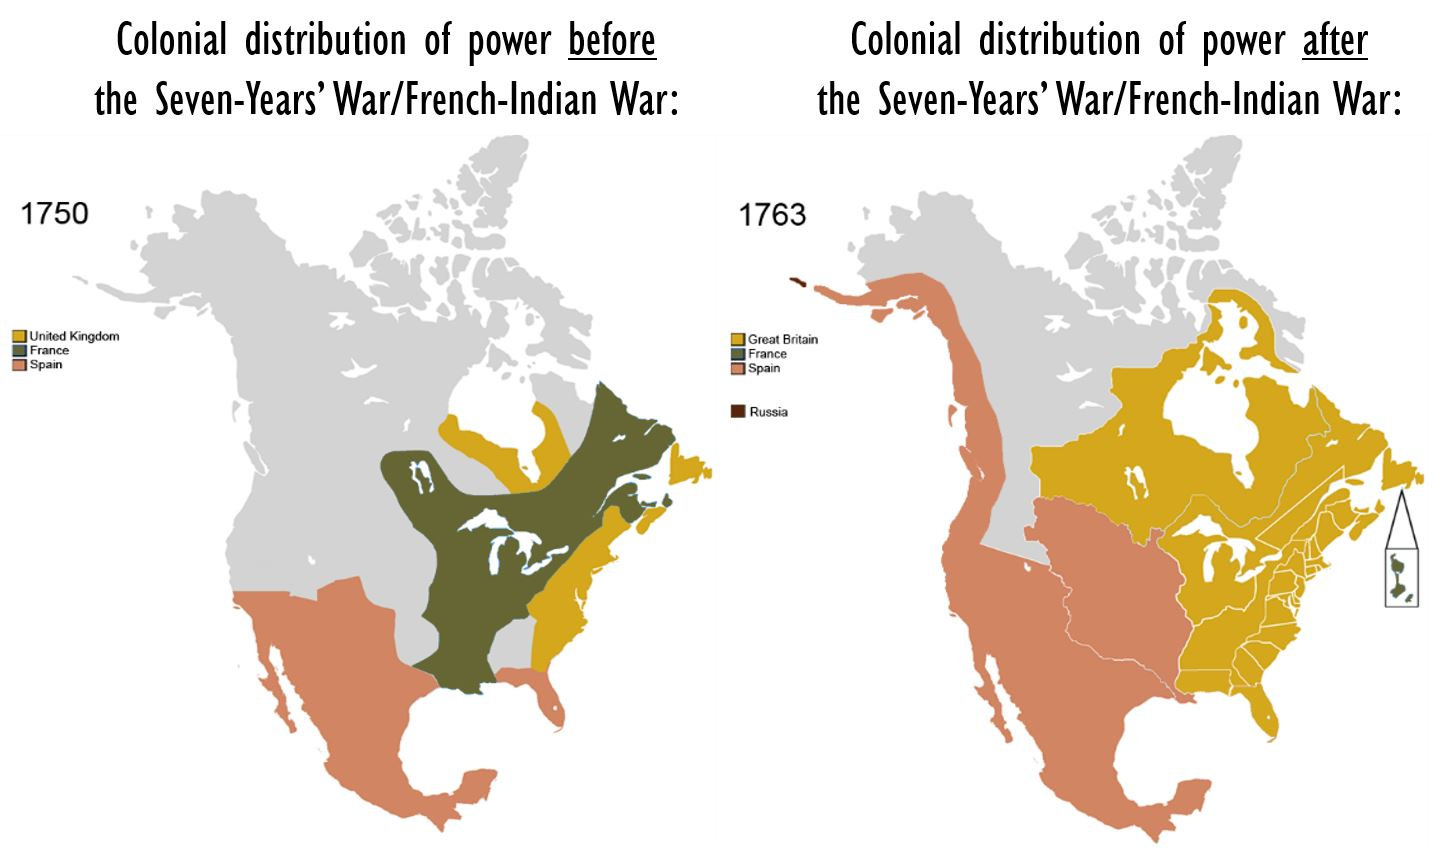 Colonial distribution of Power Before 7 After the Seven-Year's War/ French-Indian War. Credits to: Esemono Maps, 2009